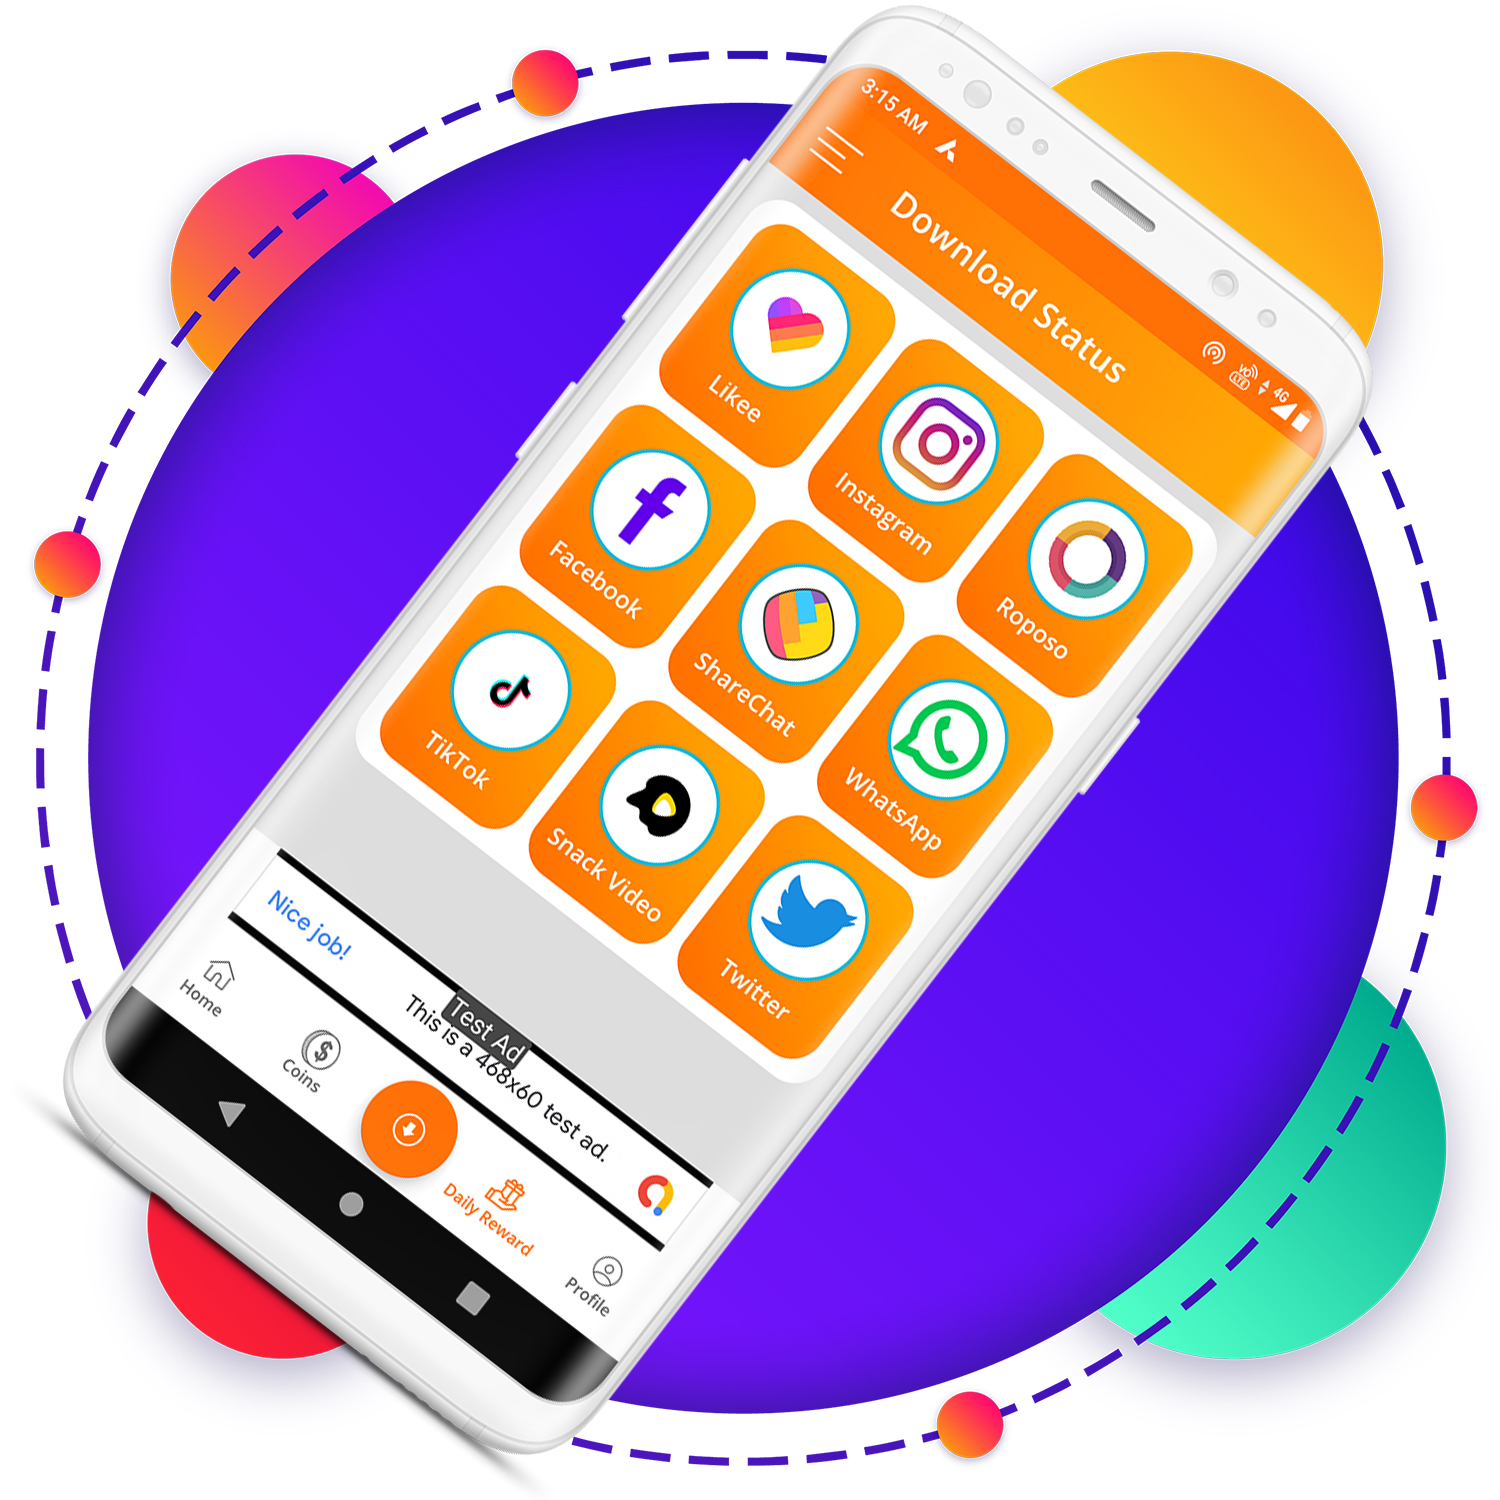 QuickCash All In One Money Earning Android App + Games + WhatsApp Tools + Earning System Admin Panel - 3